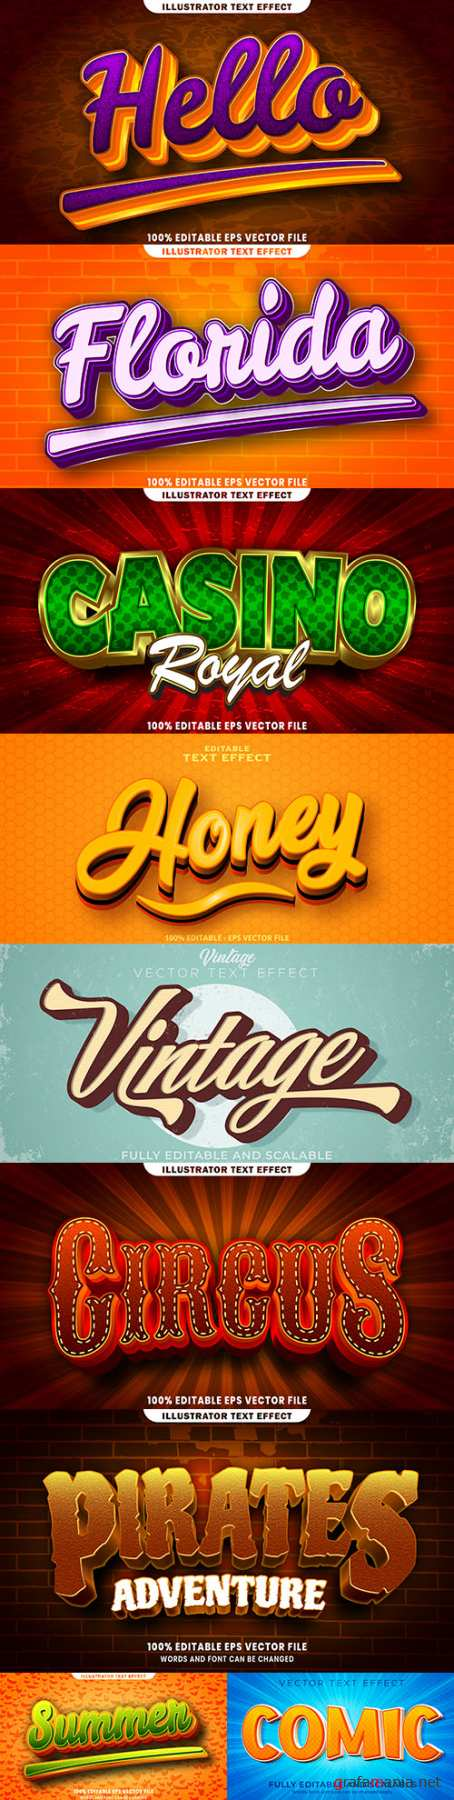 Editable font and 3d effect text design collection illustration 50